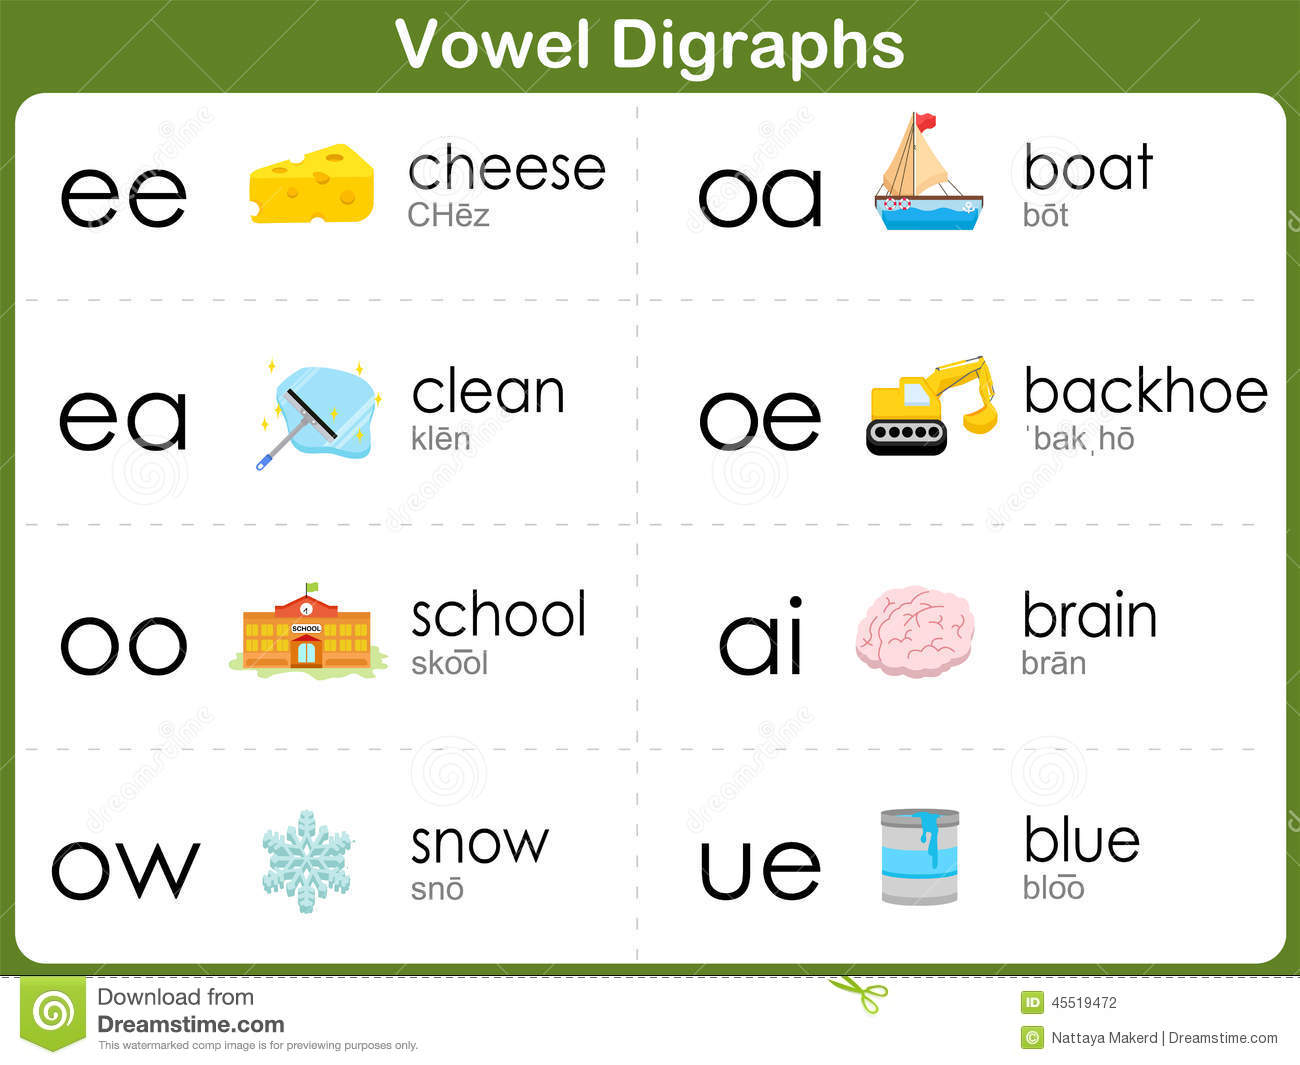 Worksheets Vowel Digraphs Worksheets vowel digraphs worksheet for kids stock vector illustration of kids